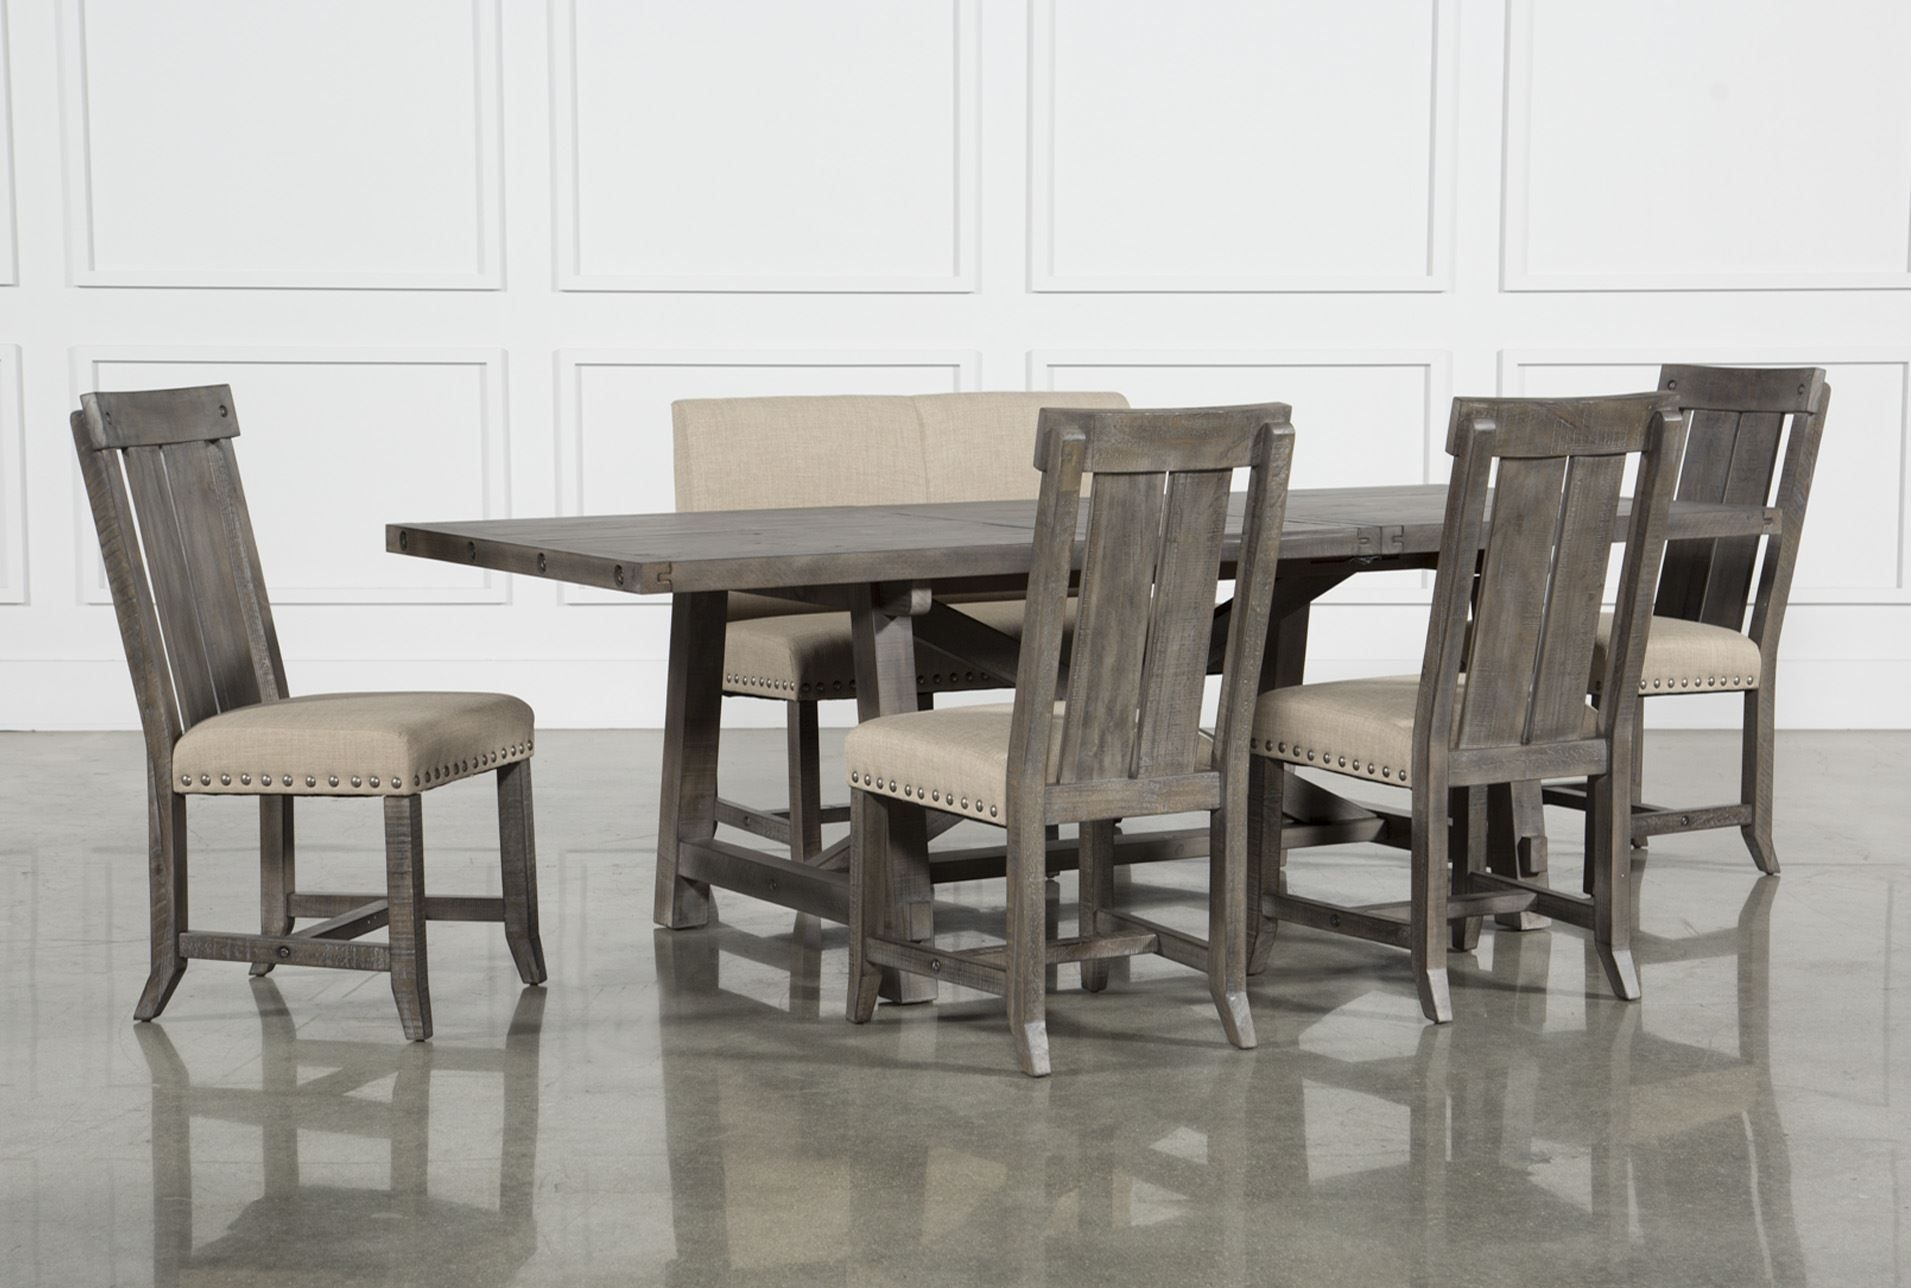 Jaxon Grey 6 Piece Rectangle Extension Dining Set W/bench & Wood Intended For Most Popular Norwood 6 Piece Rectangular Extension Dining Sets With Upholstered Side Chairs (View 4 of 20)